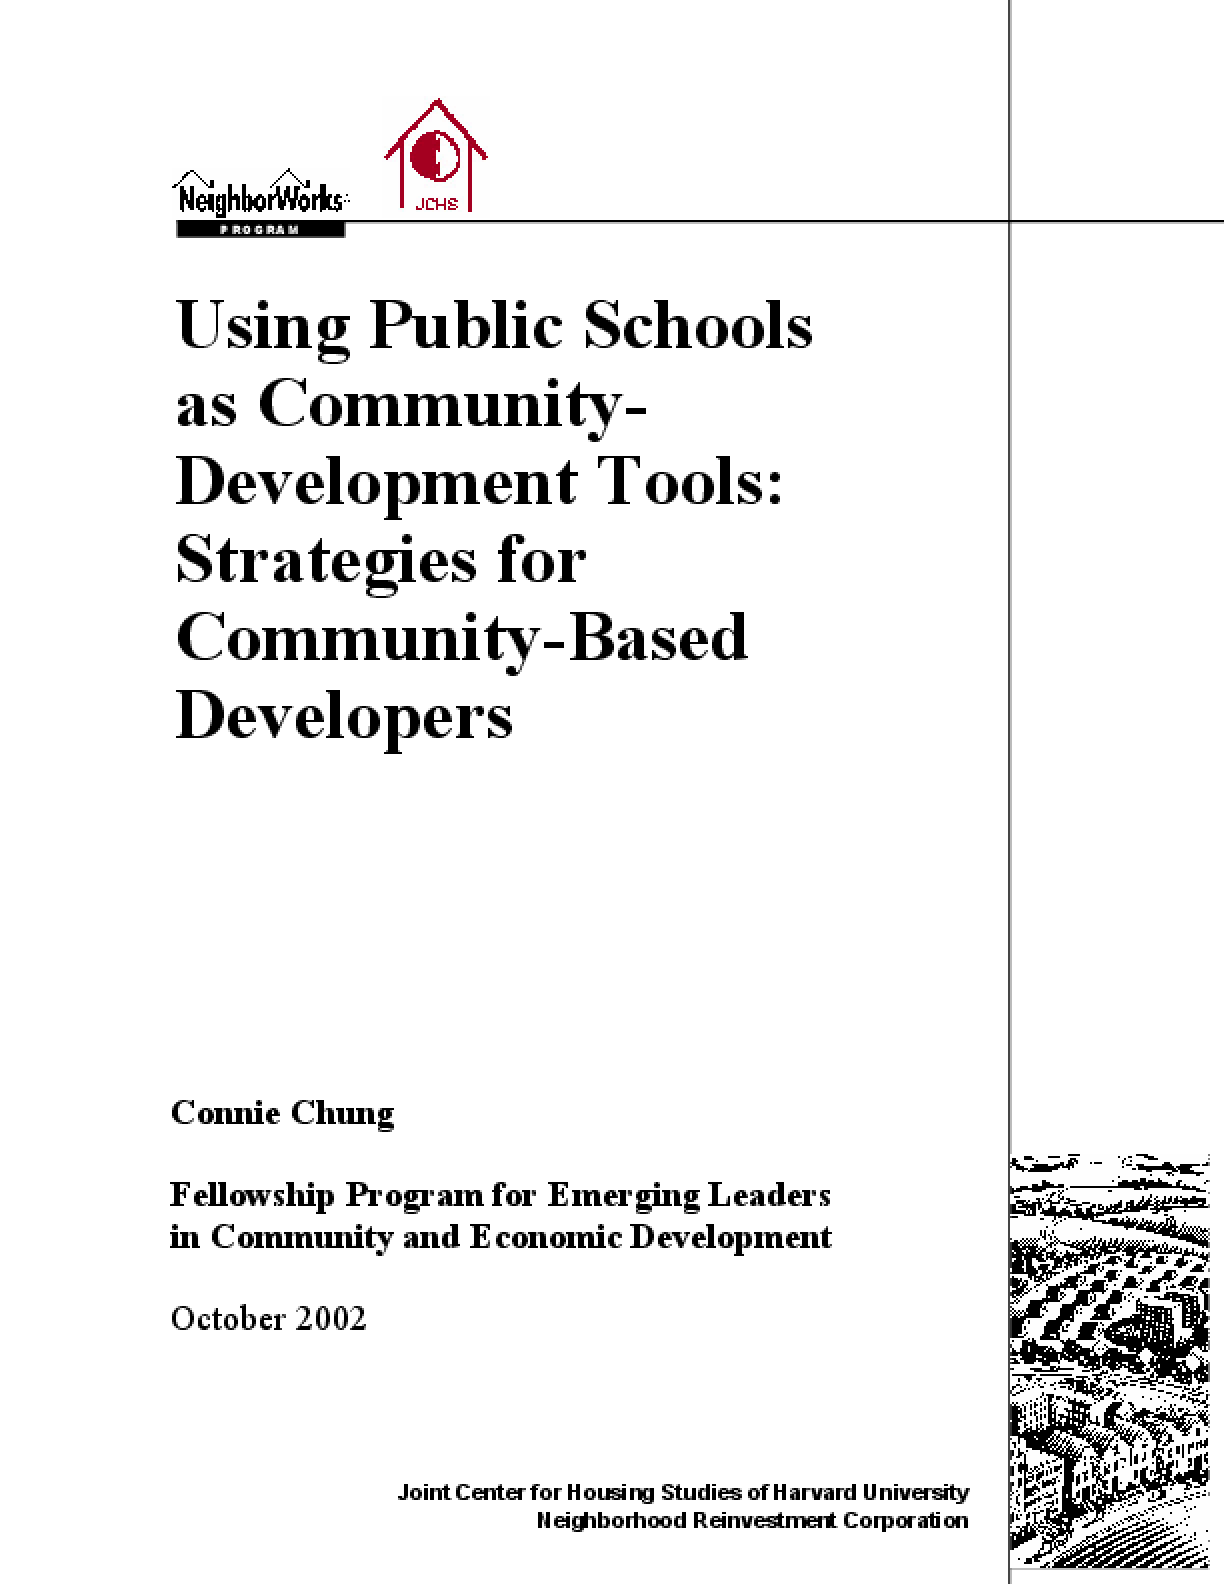 Using Public Schools as Community-Development Tools: Strategies for Community-Based Developers